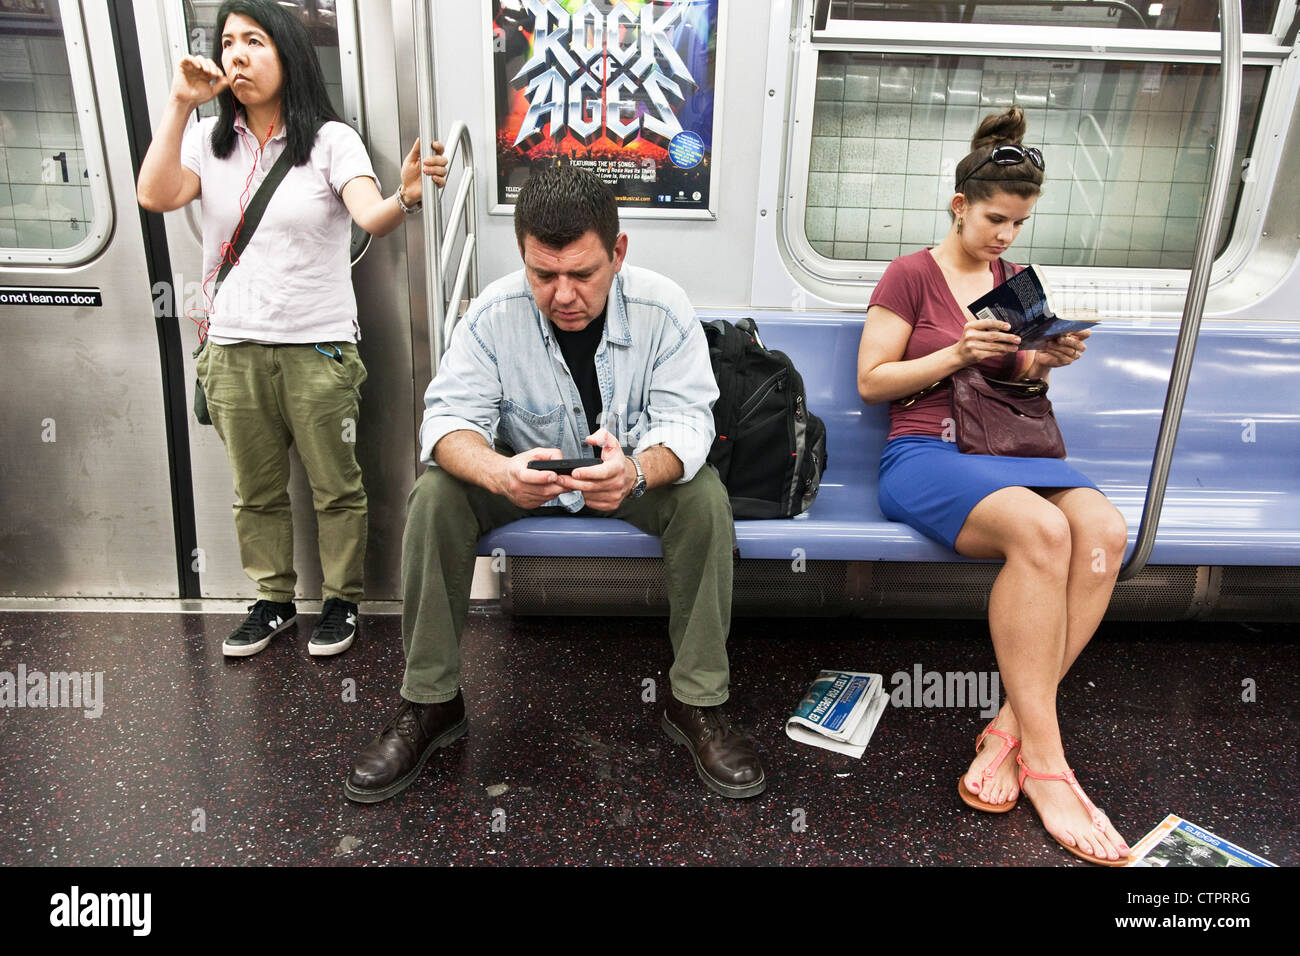 3 self absorbed New York subway passengers, a man & 2 young women, each absorbed in a private world reading - Stock Image